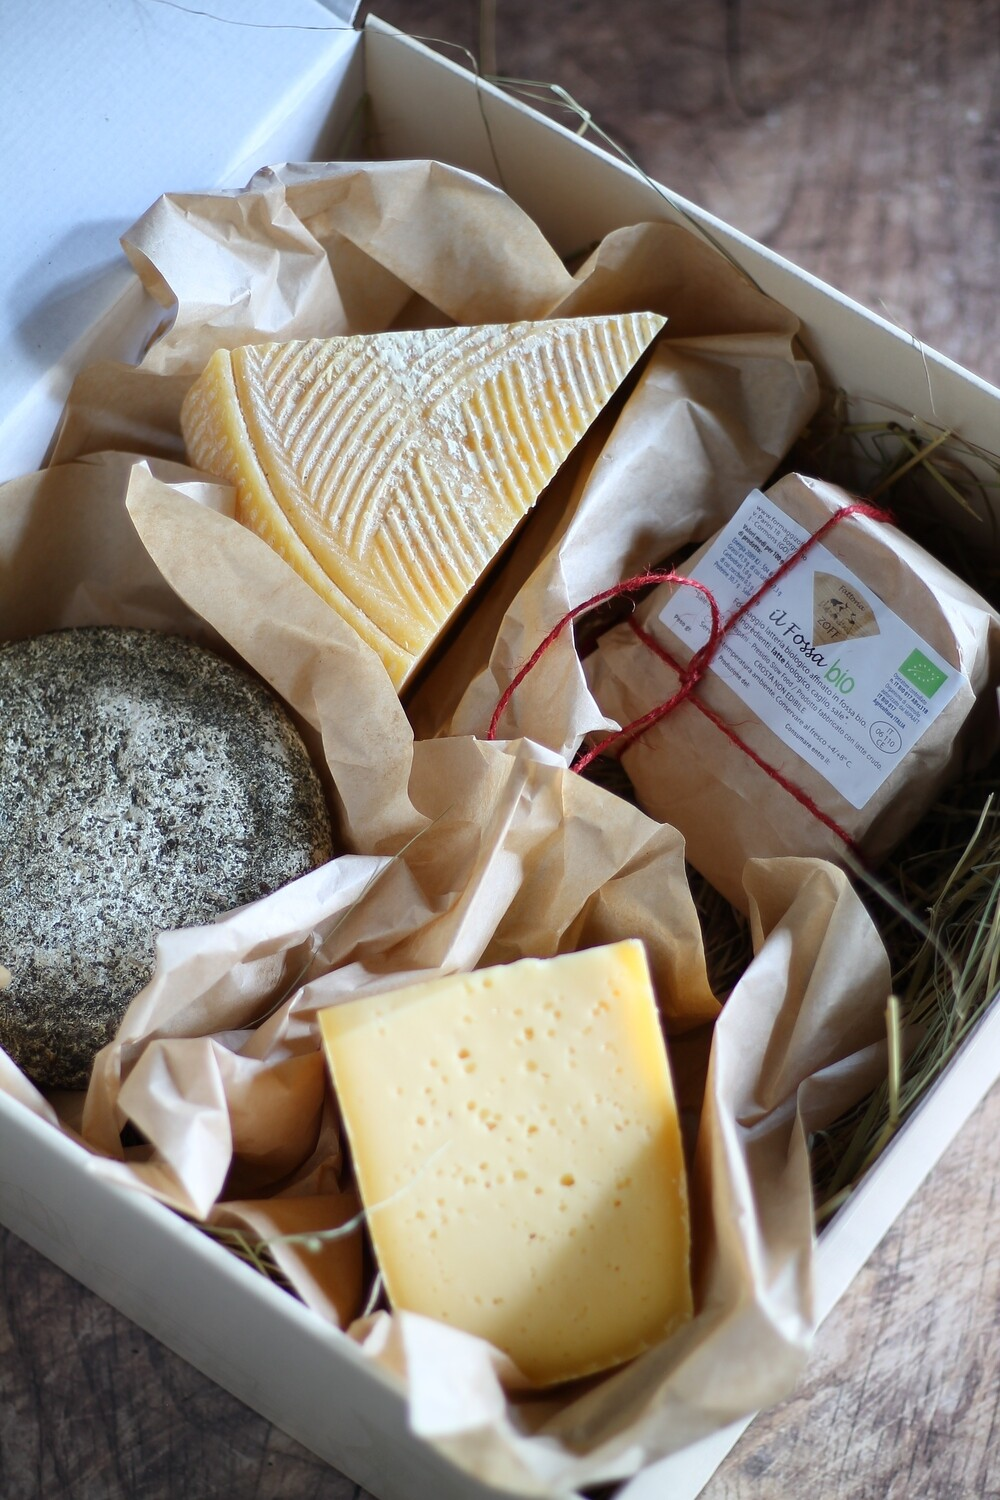 Cheese mistery box selection